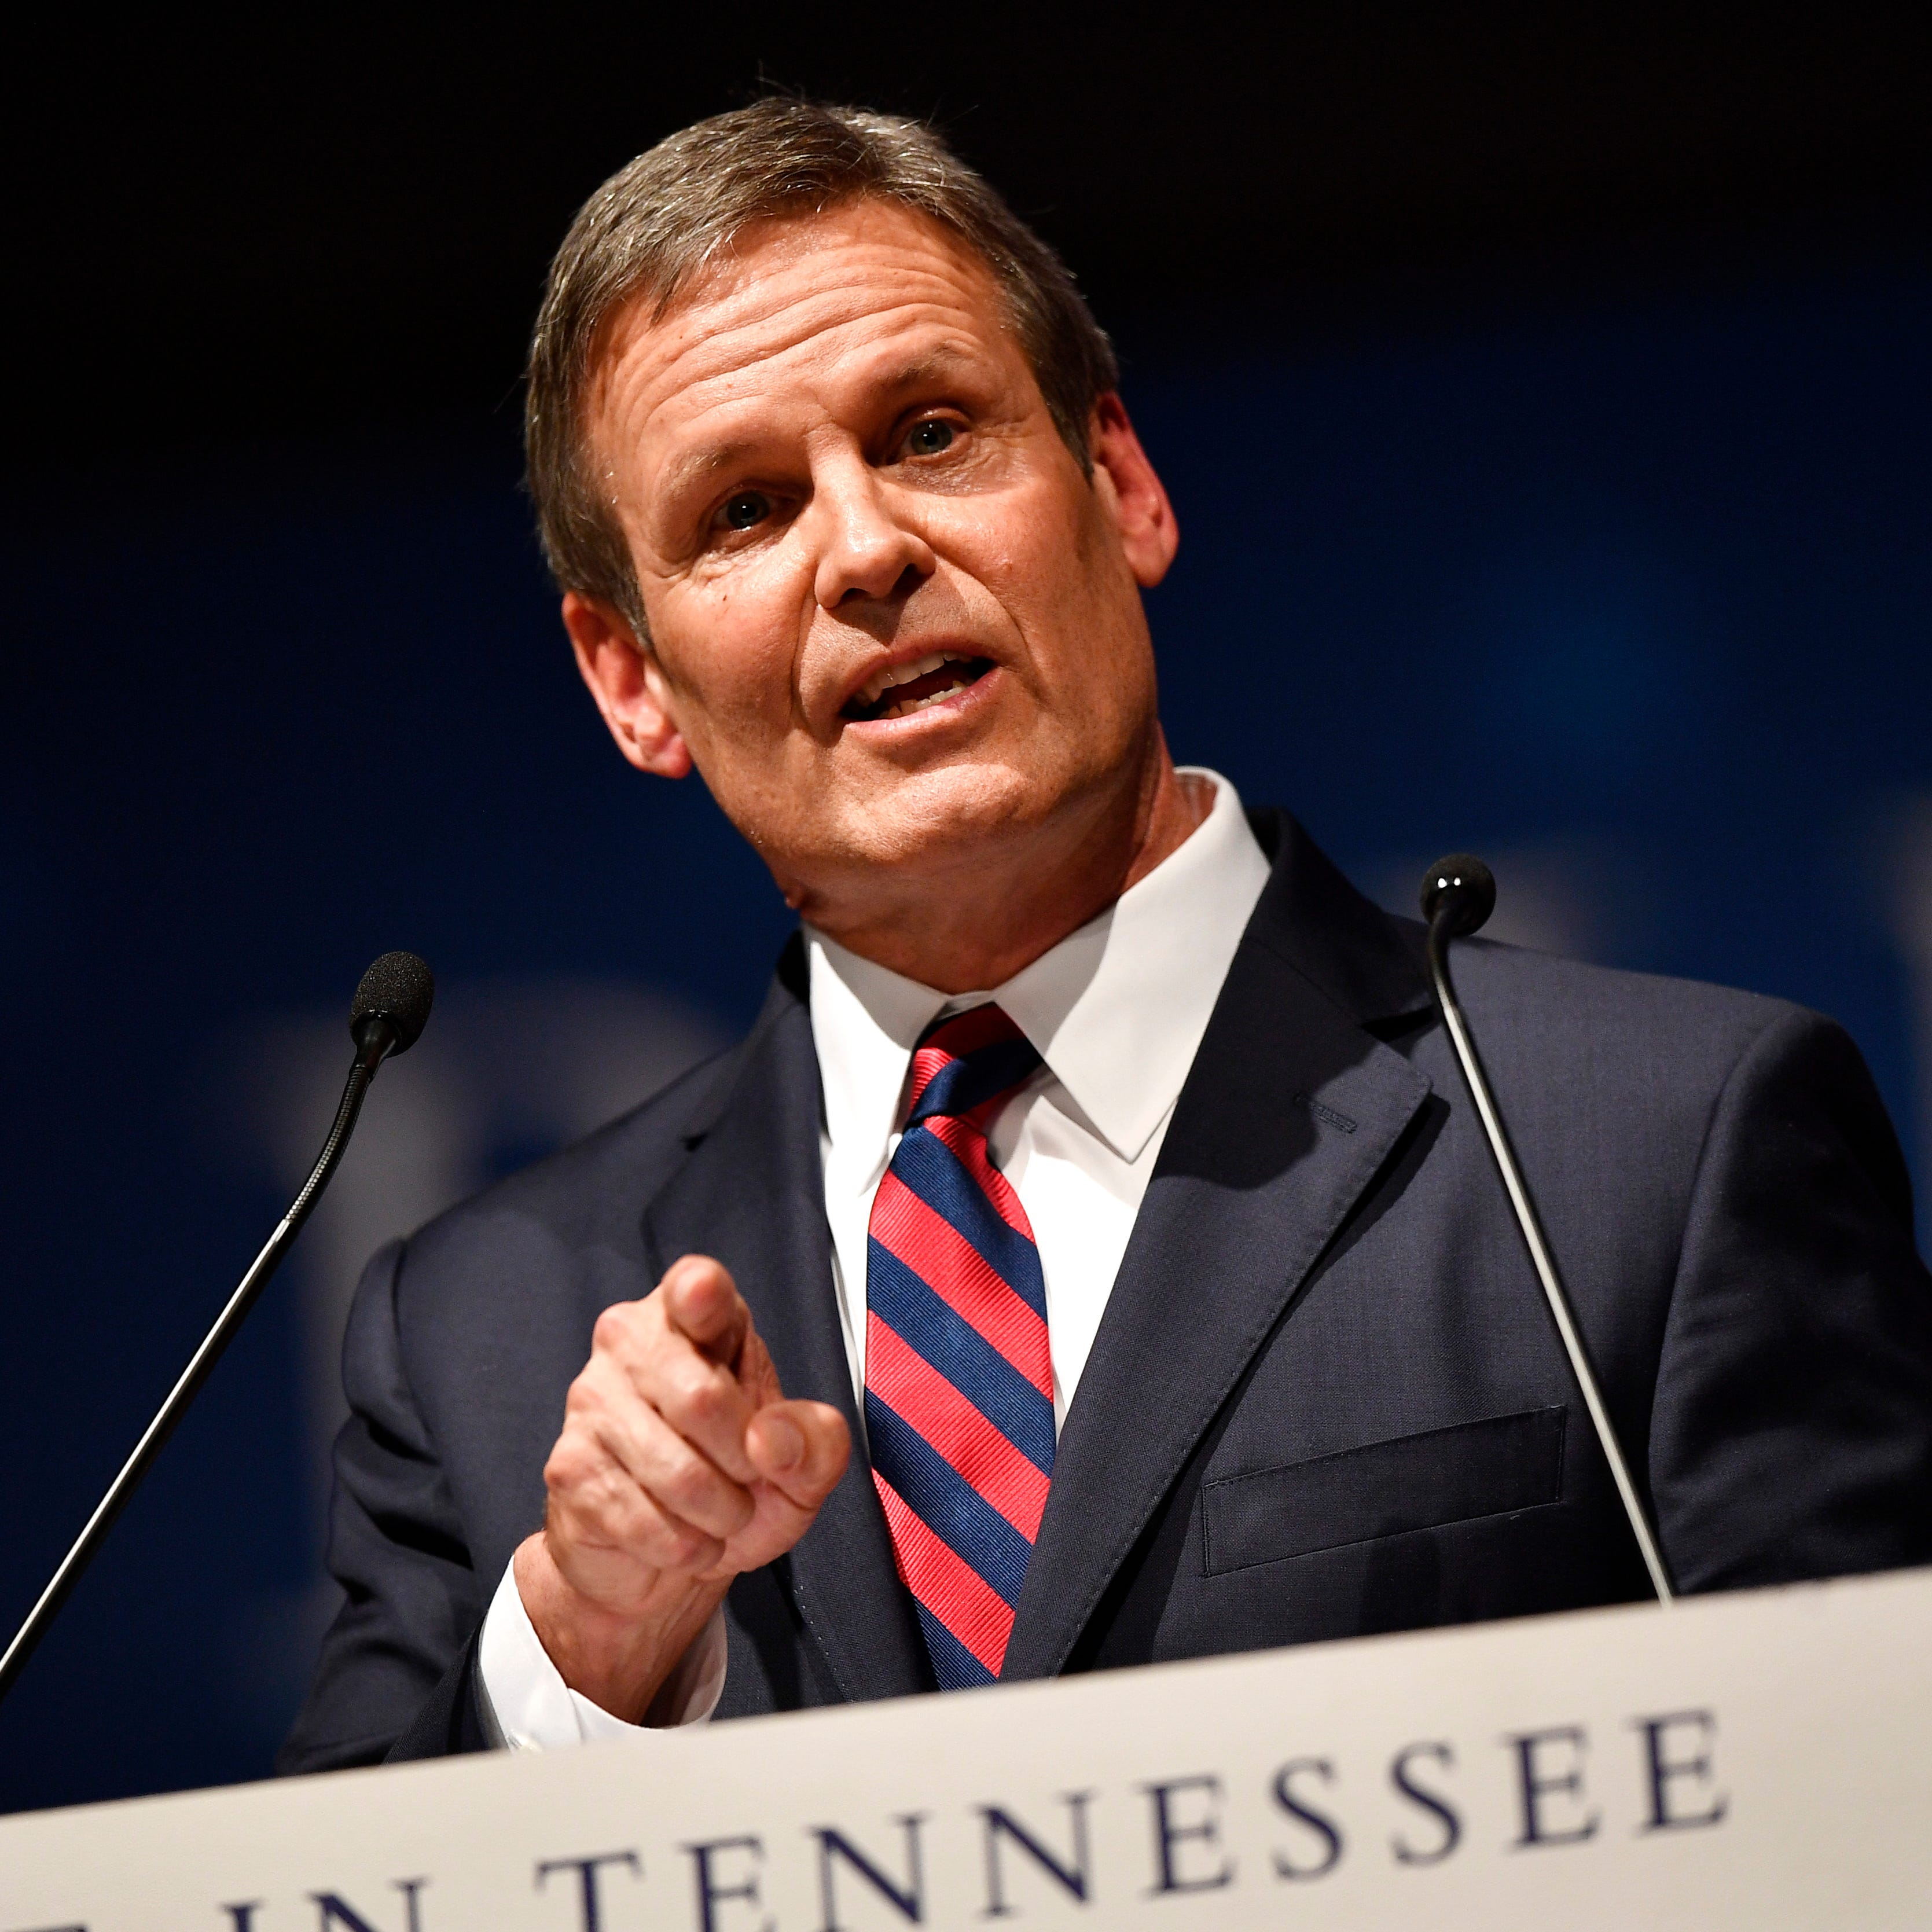 Tennessee Gov. Bill Lee says he regrets participating in 'Old South' parties at Auburn University